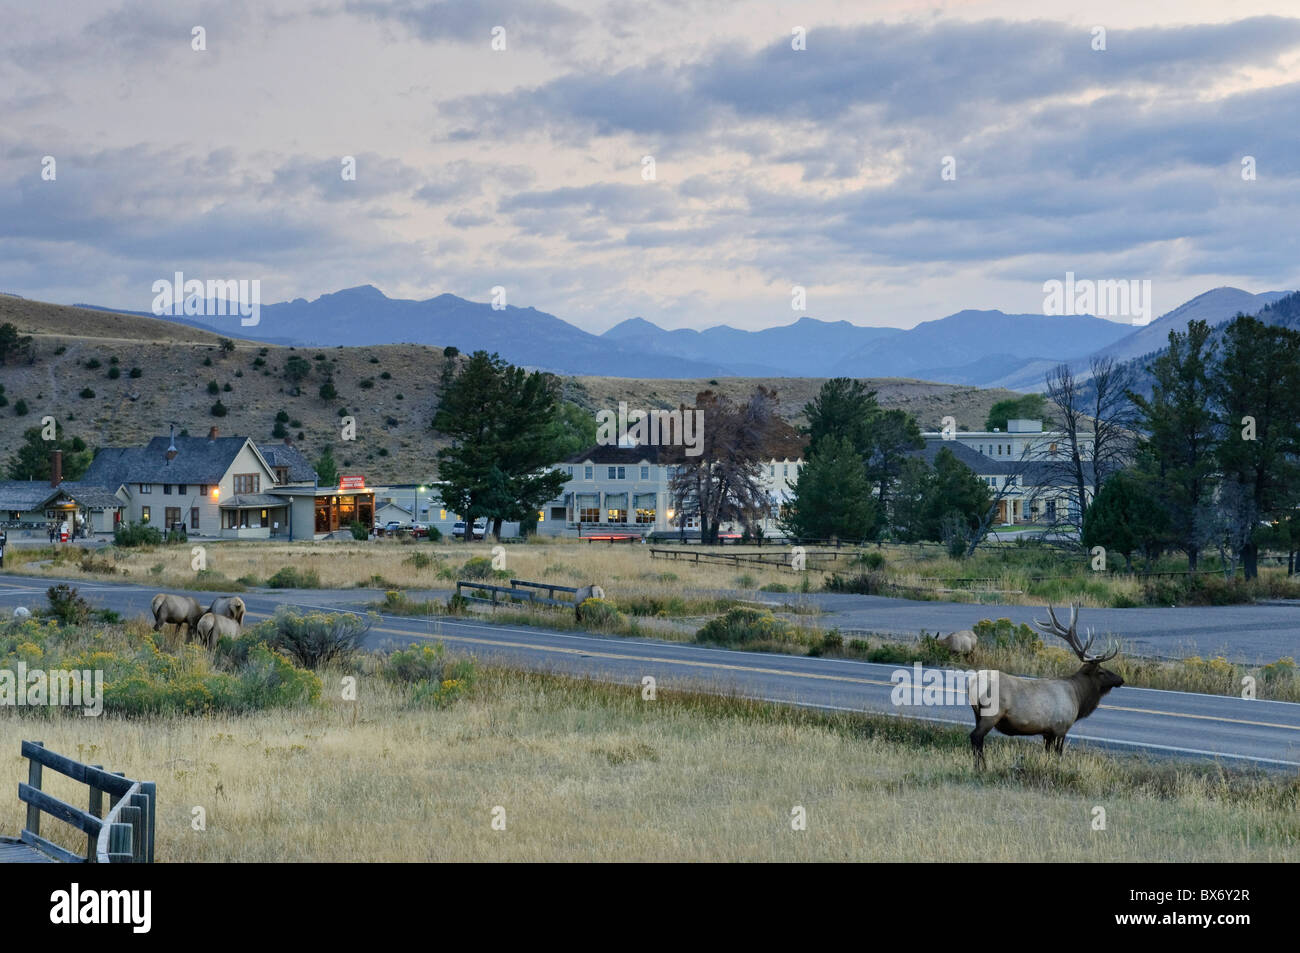 mammoth hot springs village and resort, yellowstone national park